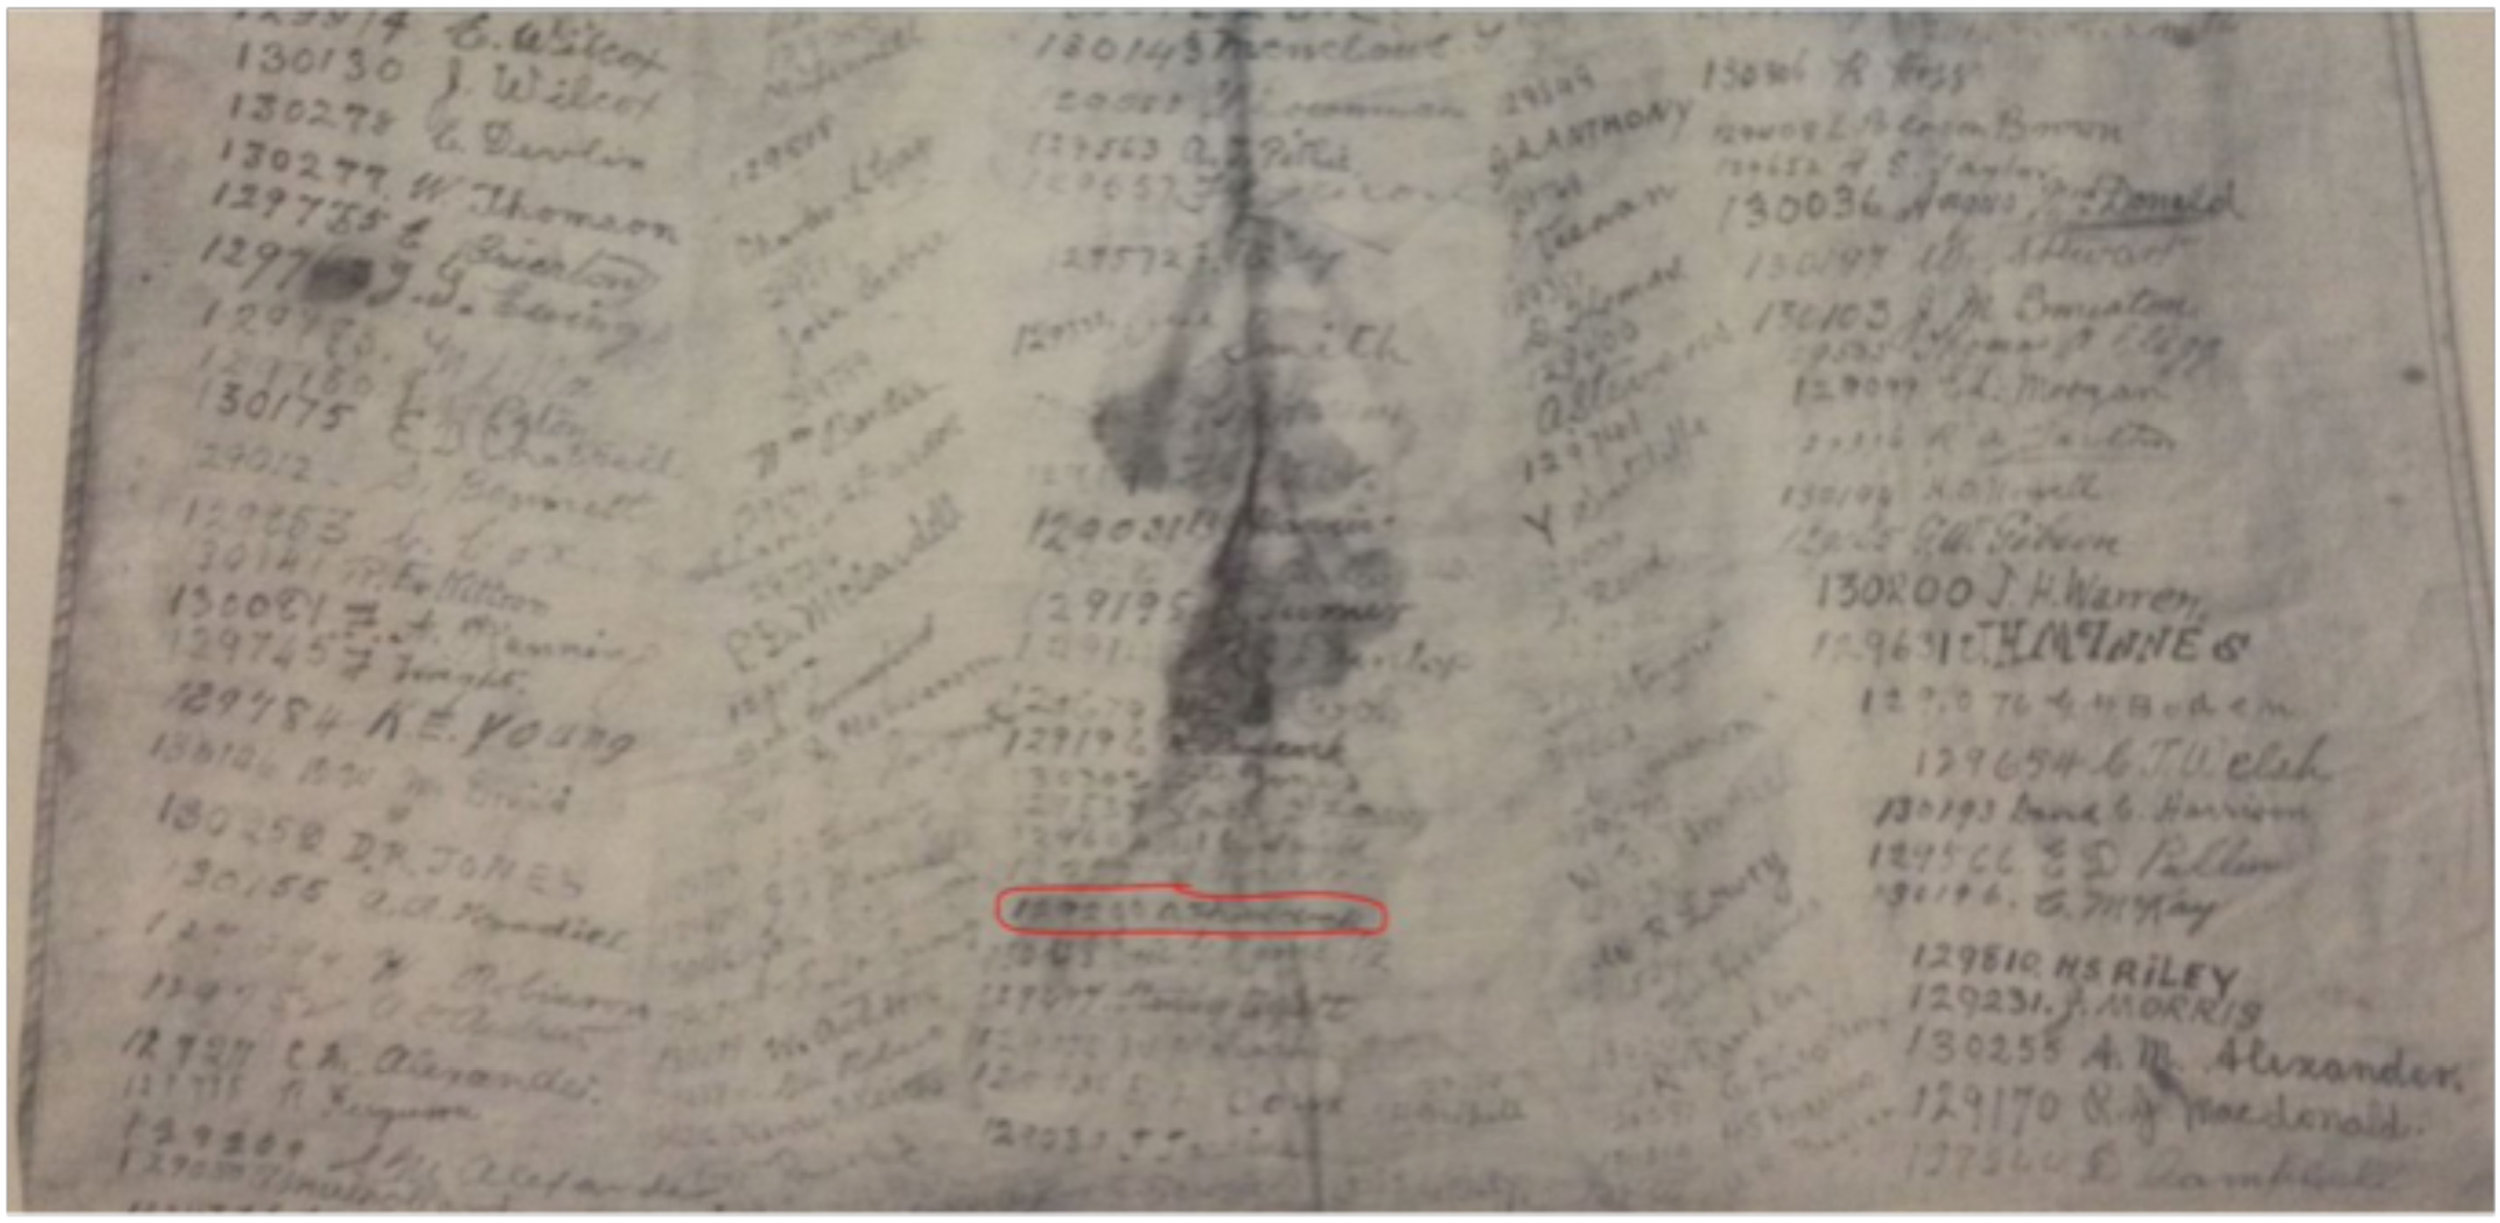 Kilt apron, close up showing the location of Private Arthur Forbes Ruddock's signature.